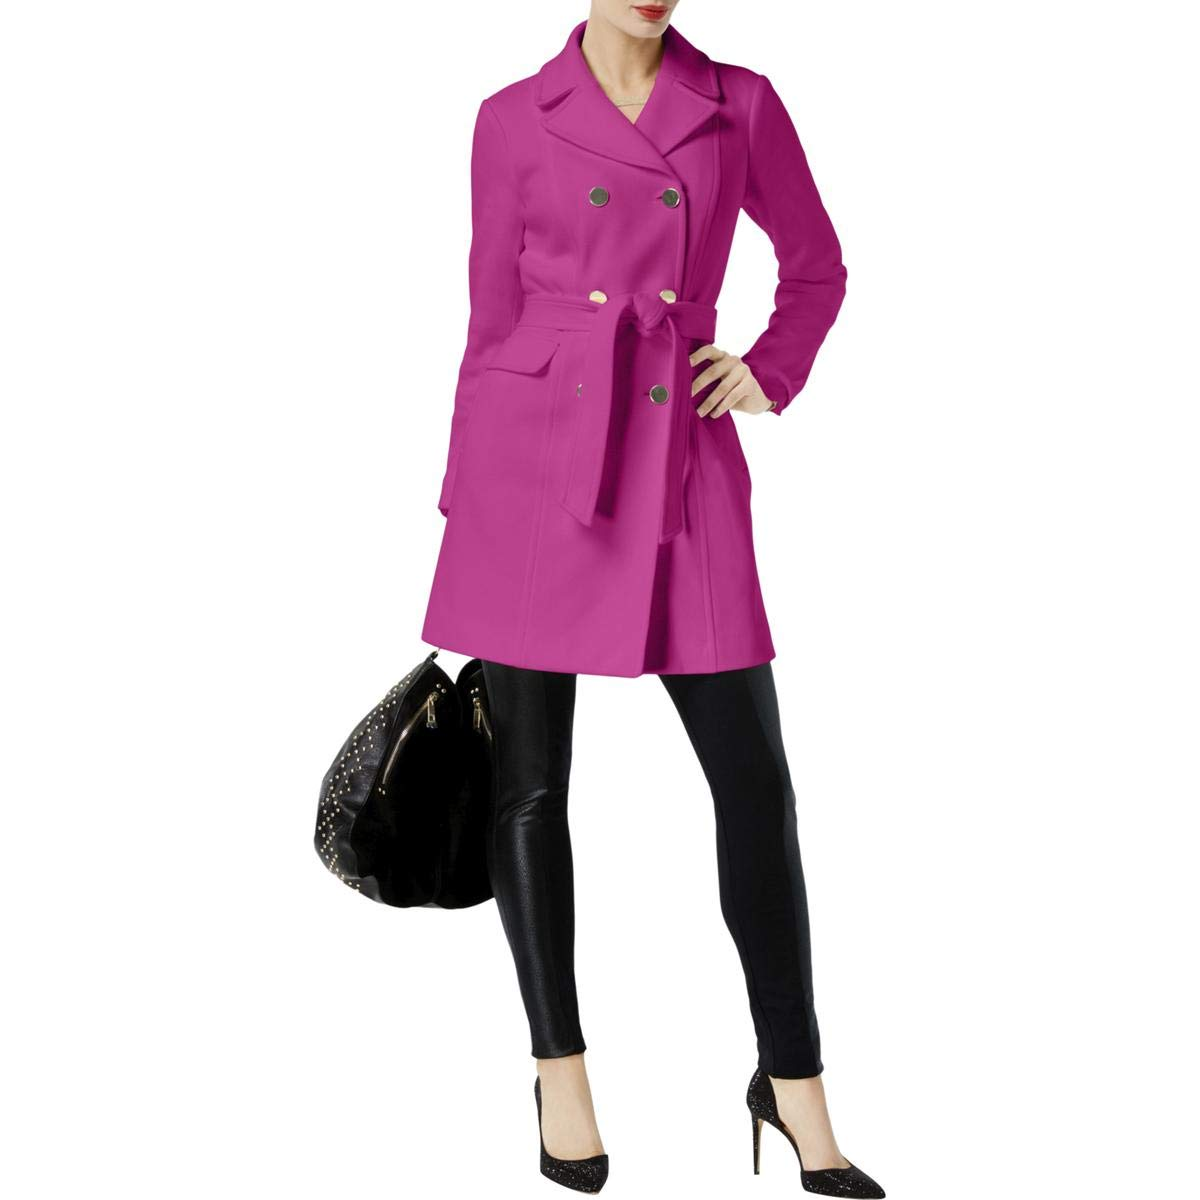 Berryice INC Womens DoubleBreasted Pea Coat